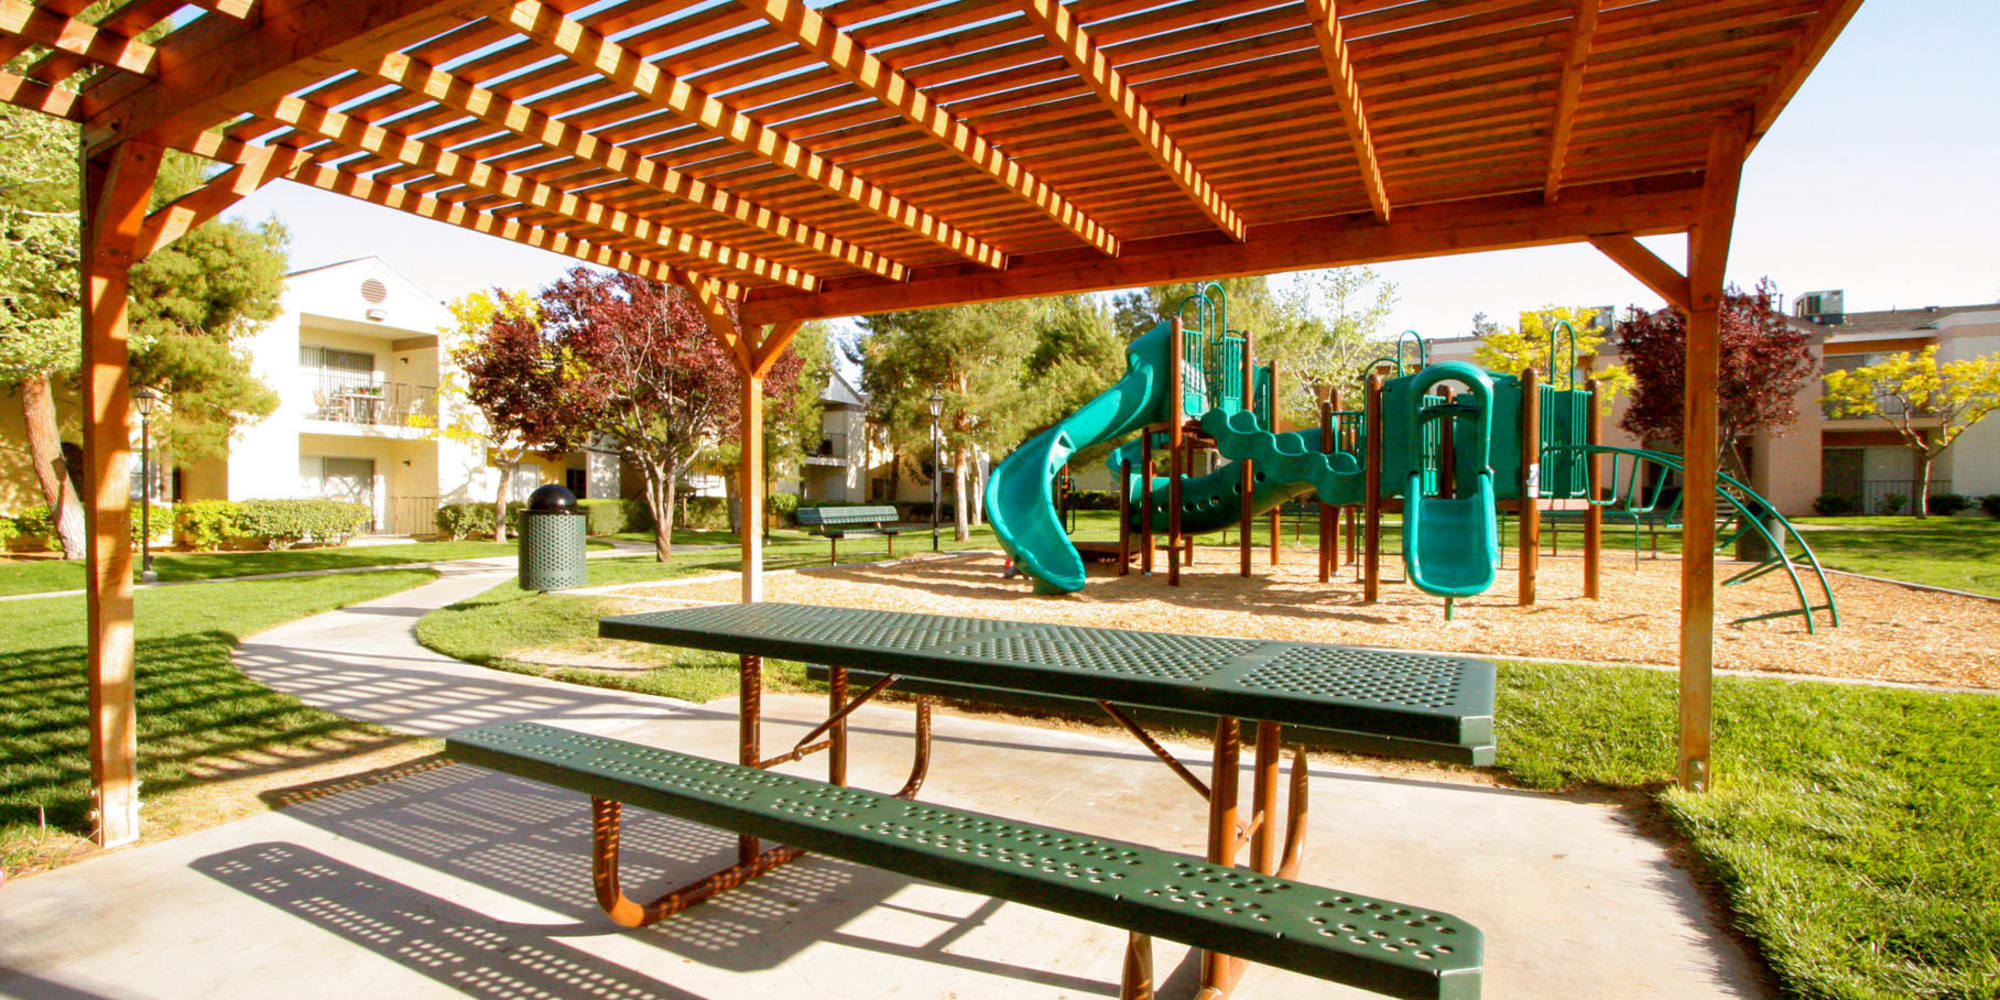 Picnic bench and table under a pergola near the playground at Mountain Vista in Victorville, California